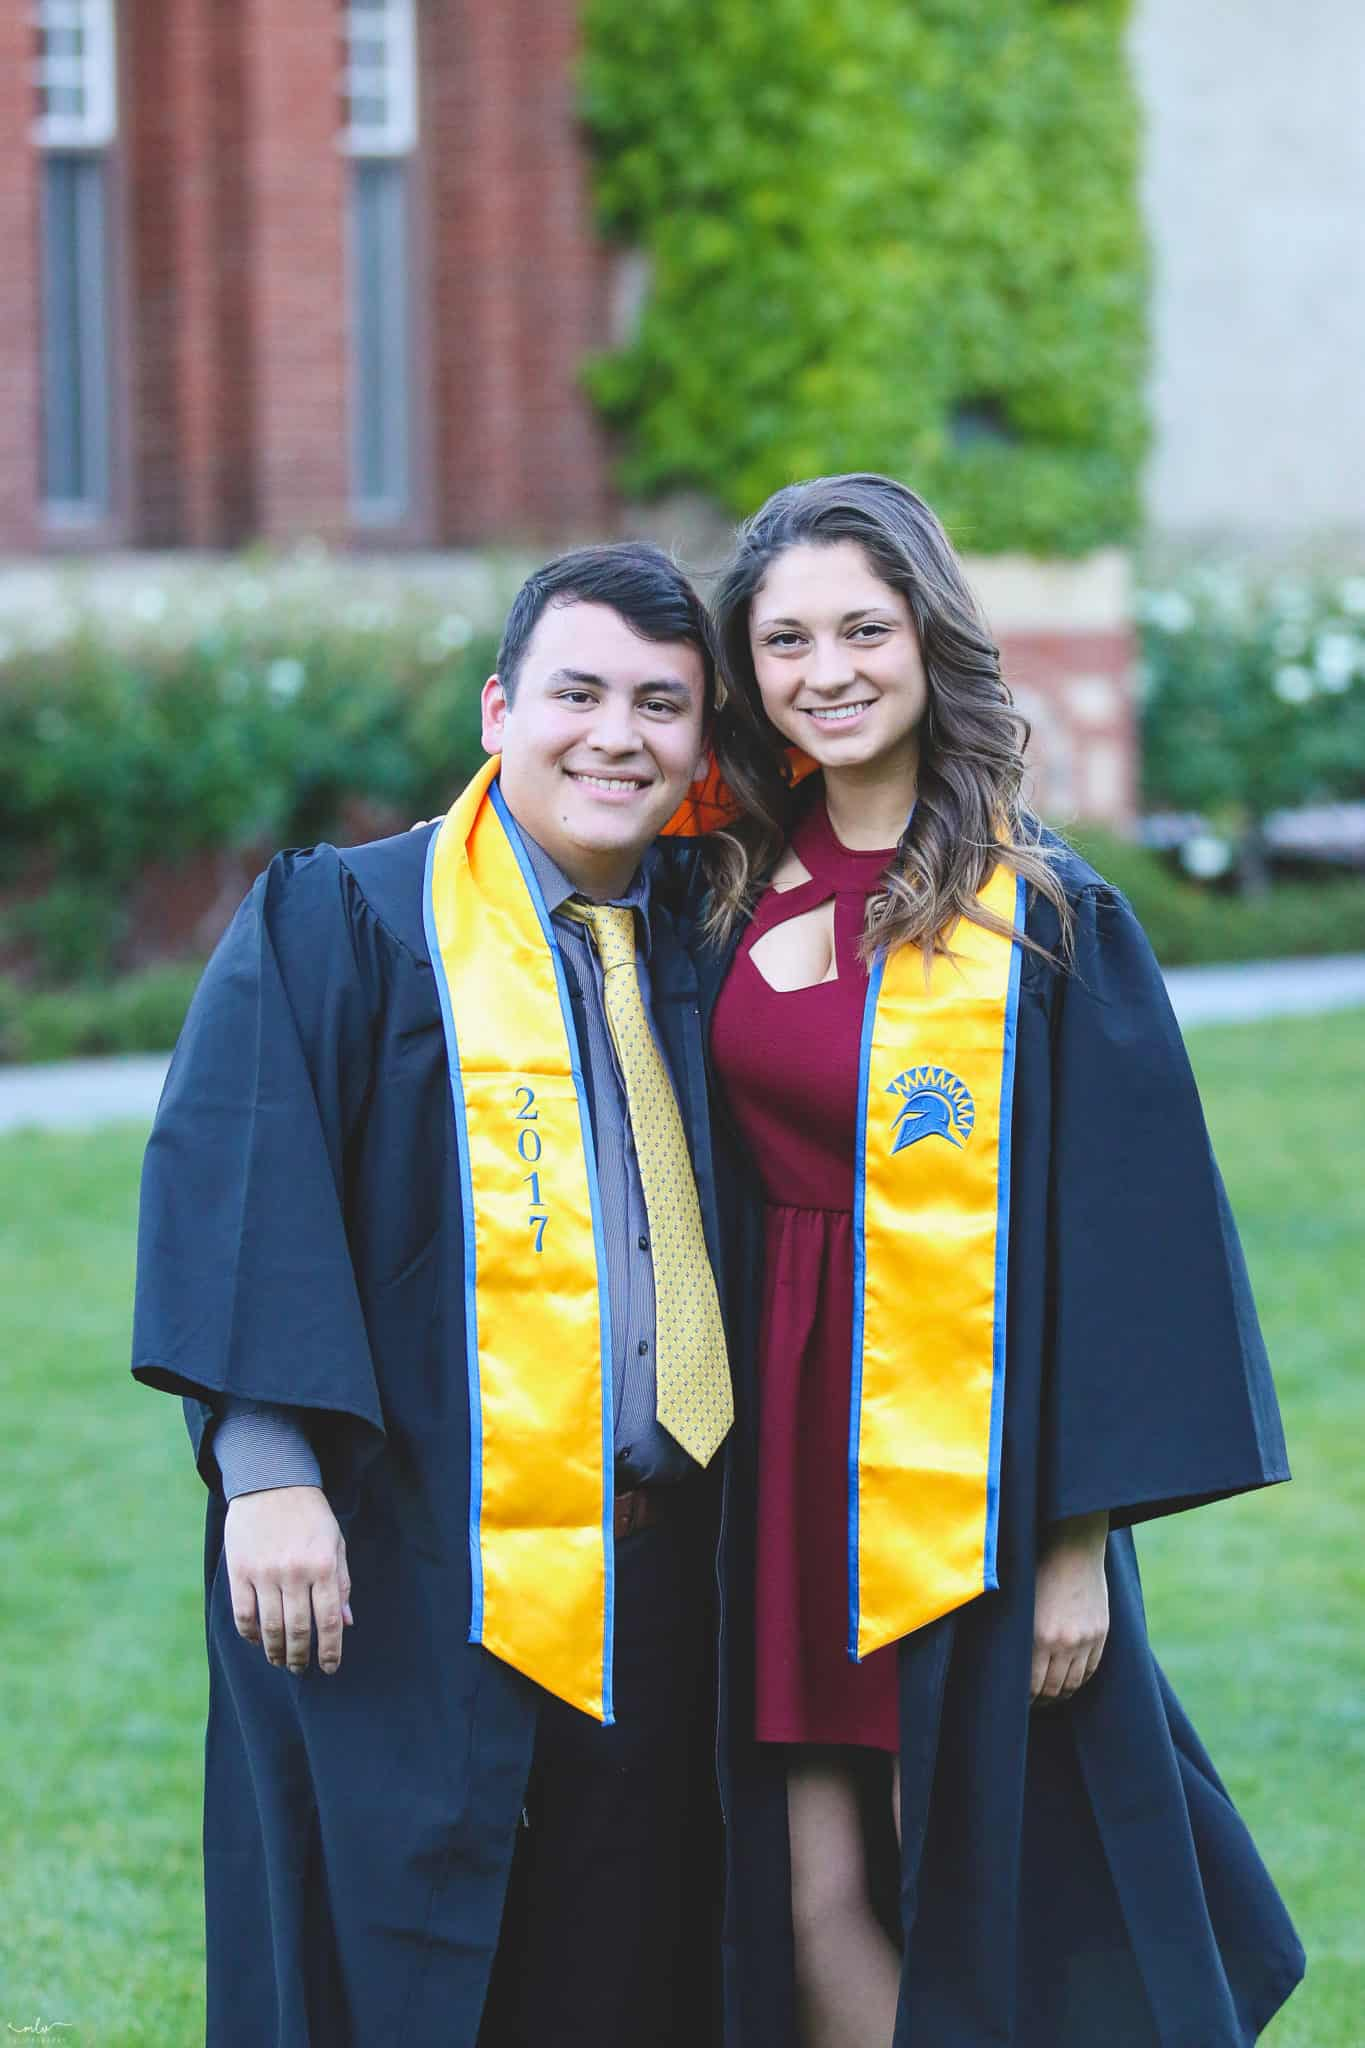 Graduation portraits and photoshoot at SJSU taken in San Jose, CA